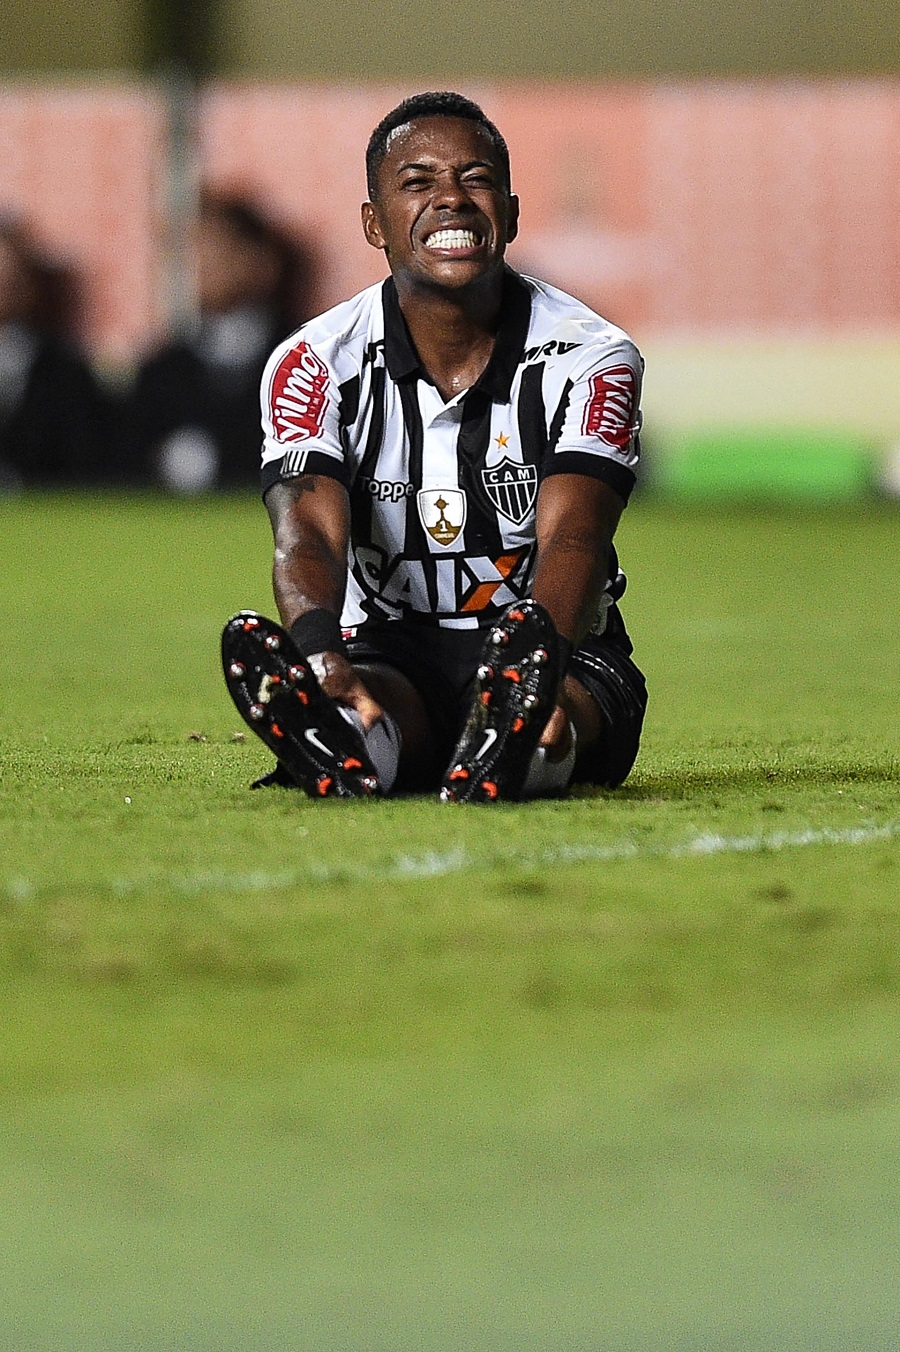 BELO HORIZONTE, BRAZIL - APRIL 13: Robinho #7 of Atletico MG a match between Atletico MG and Sport Boys as part of Copa Bridgestone Libertadores 2017 at Independencia stadium on April 13, 2017 in Belo Horizonte, Brazil. (Photo by Pedro Vilela/Getty Images)